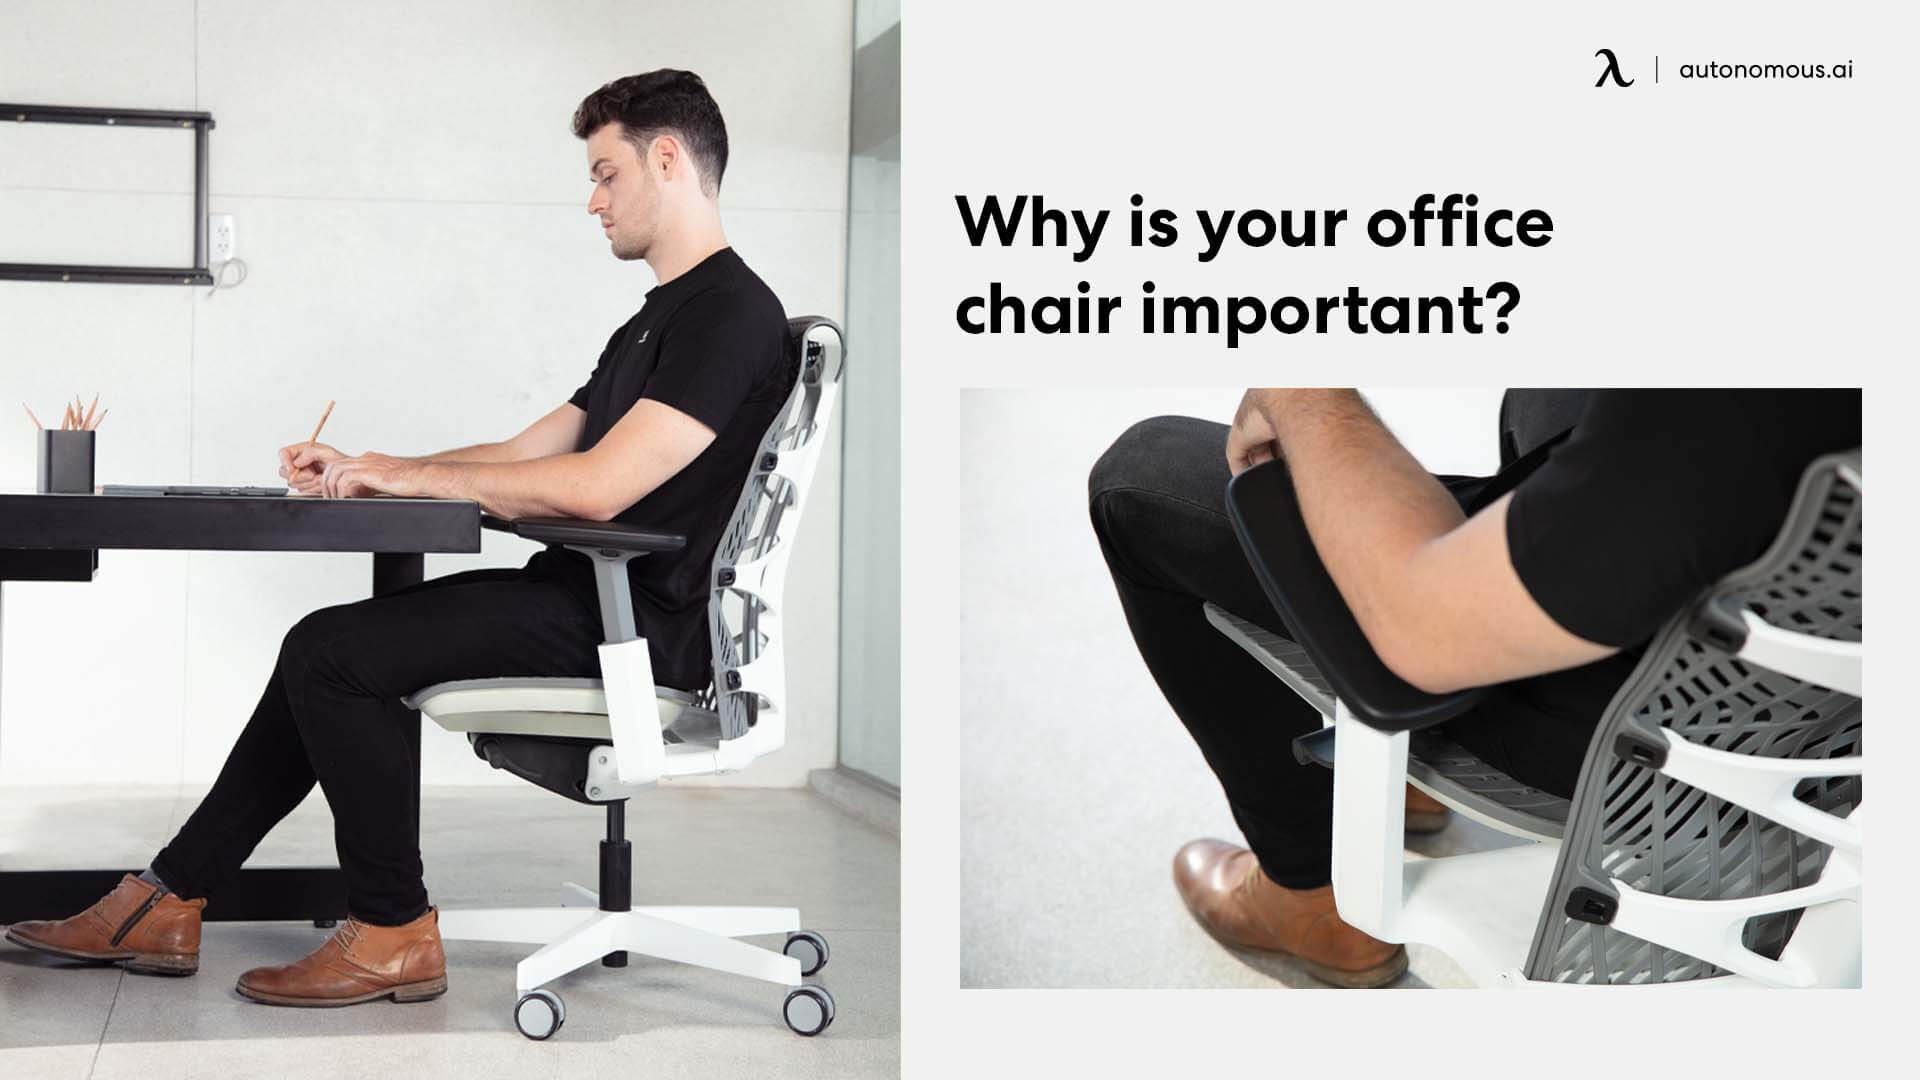 Why is your office chair important